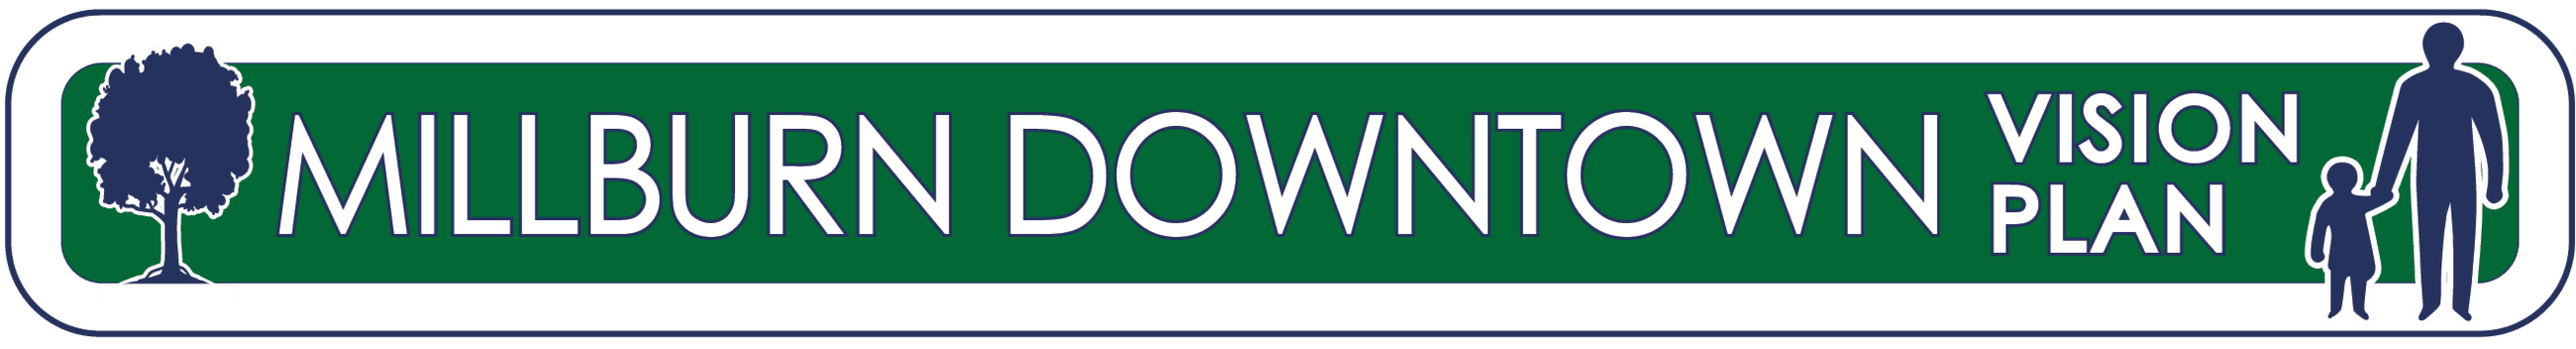 Logo: Green background with white text that reads Millburn Downtown Vision Plan